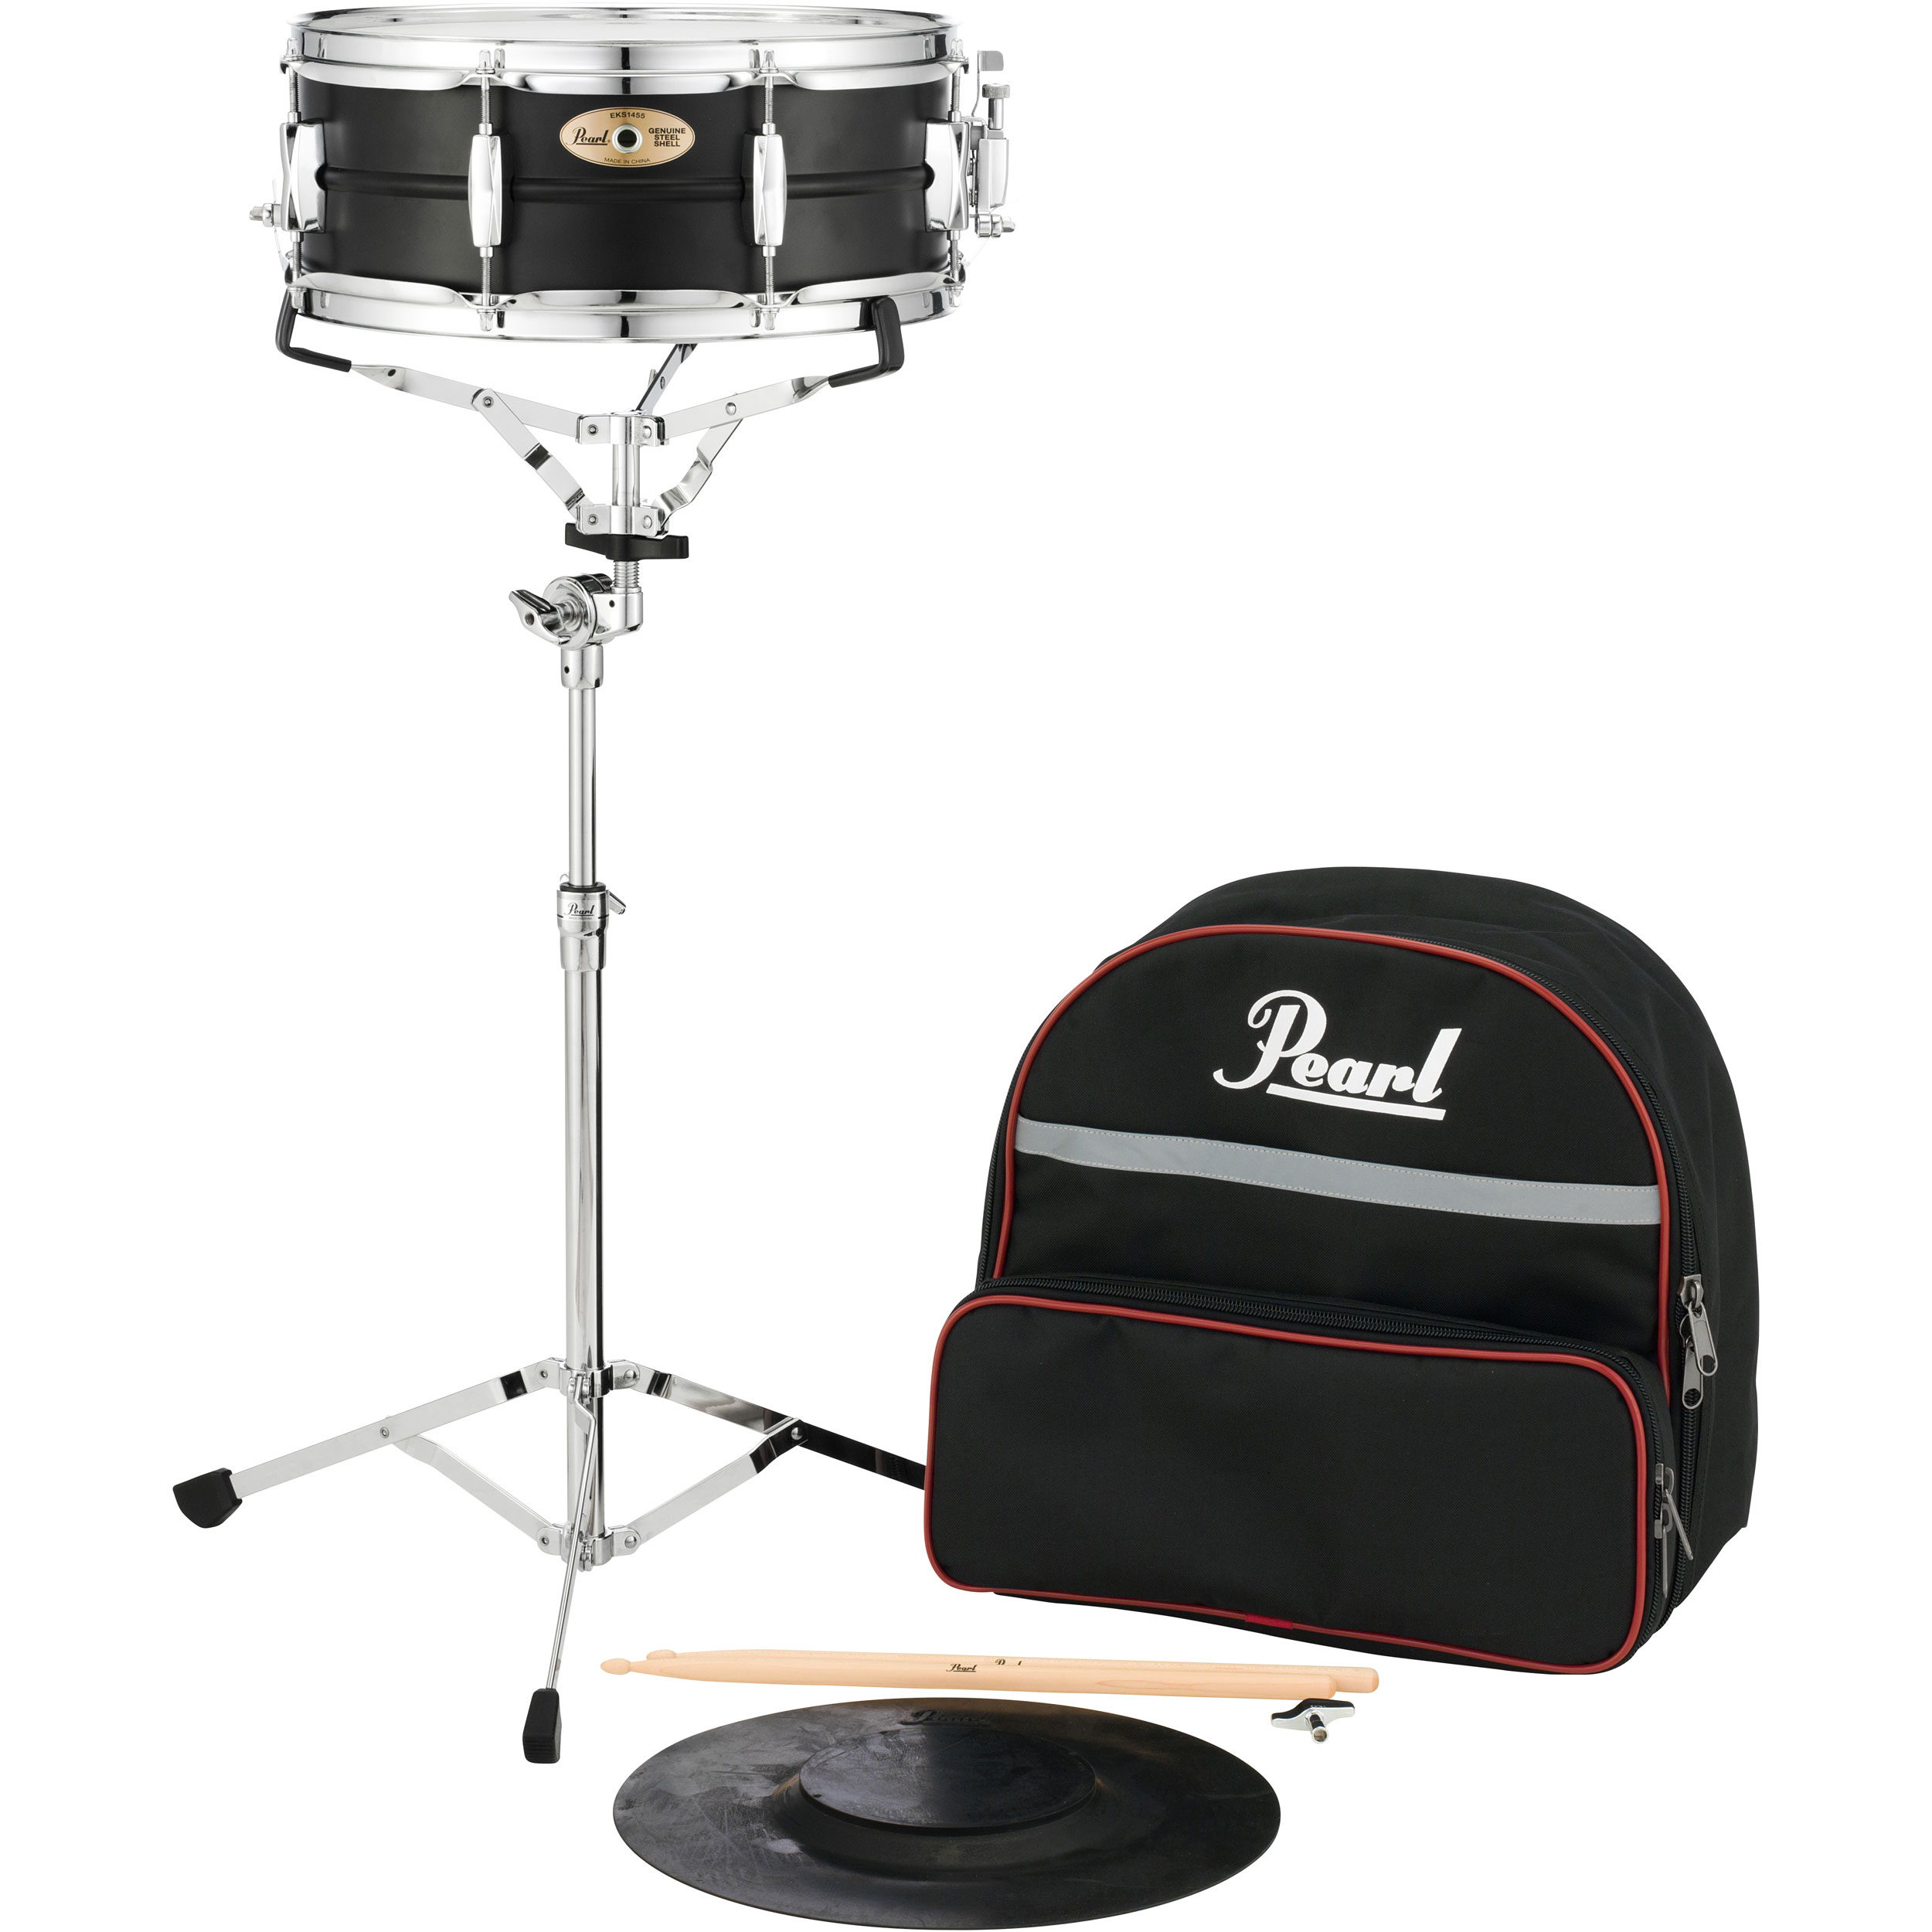 Pearl Student Snare Kit with Backpack-Style Bag